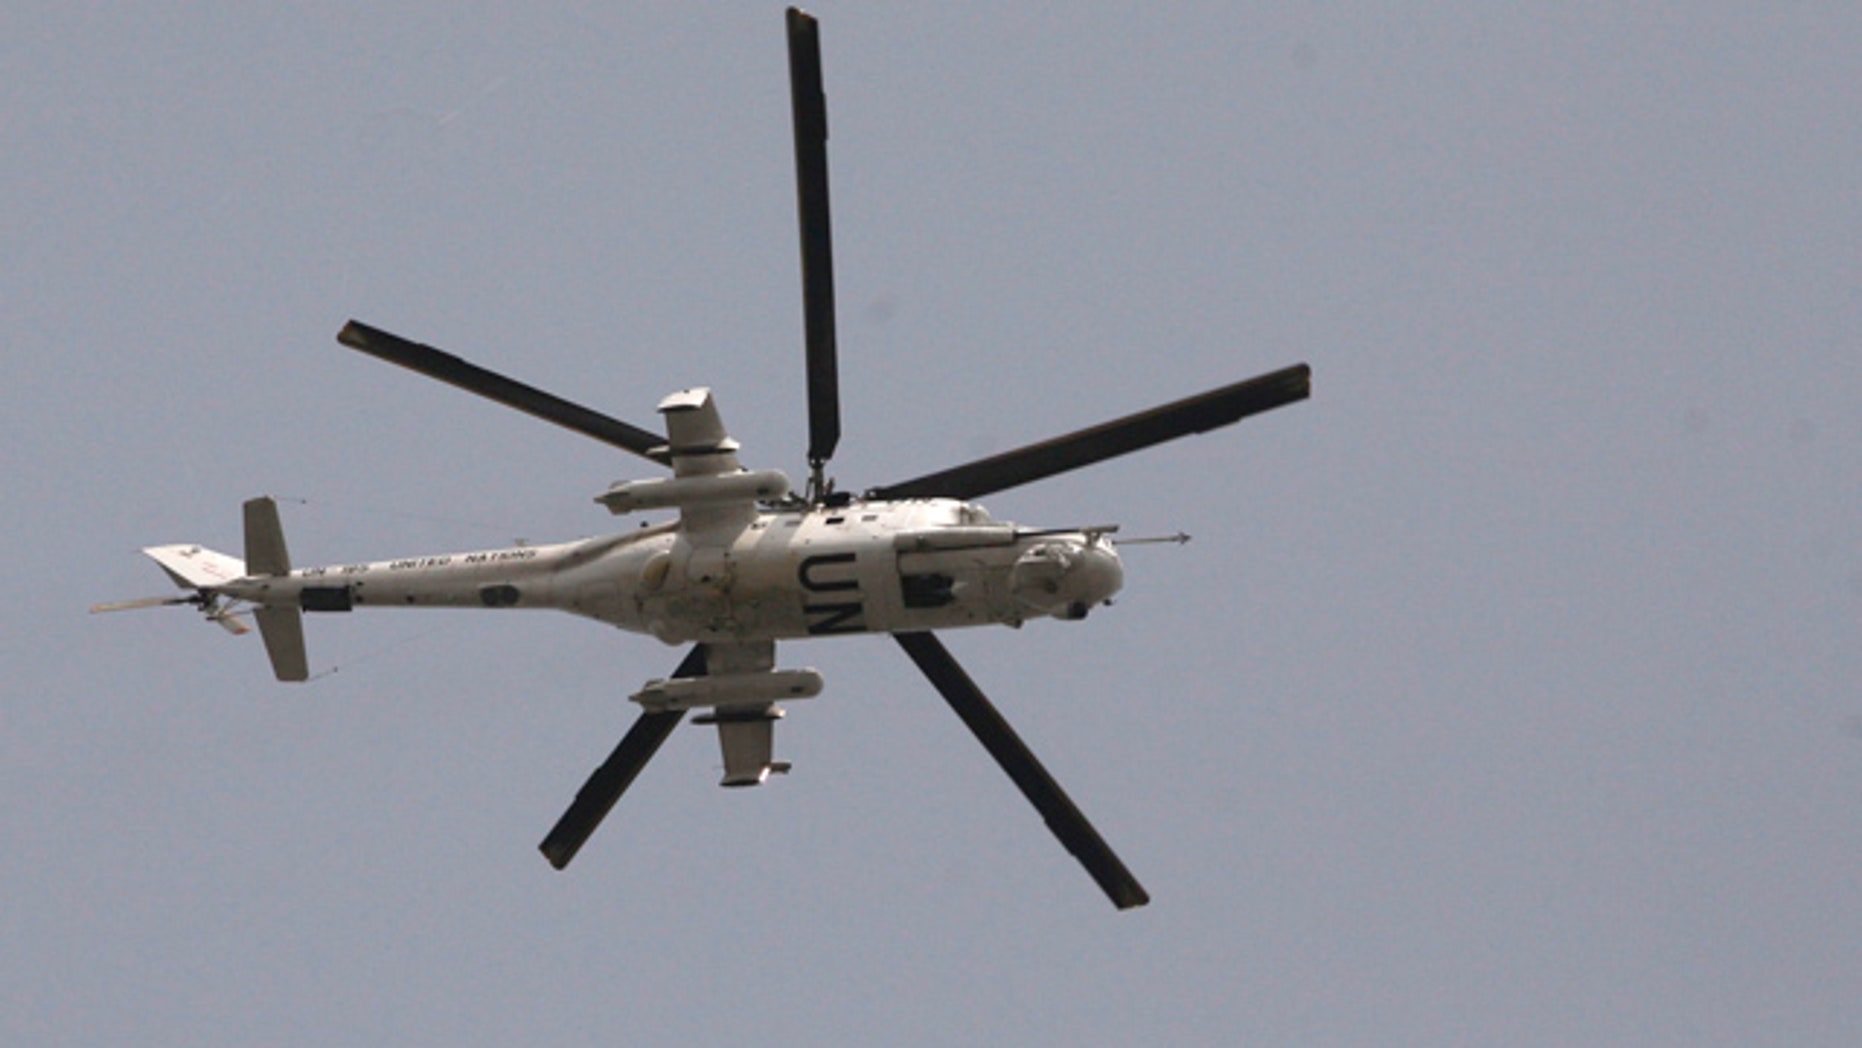 April 1, 2011: A UN helicopter passes over the city of  Abidjan, Ivory Coast.